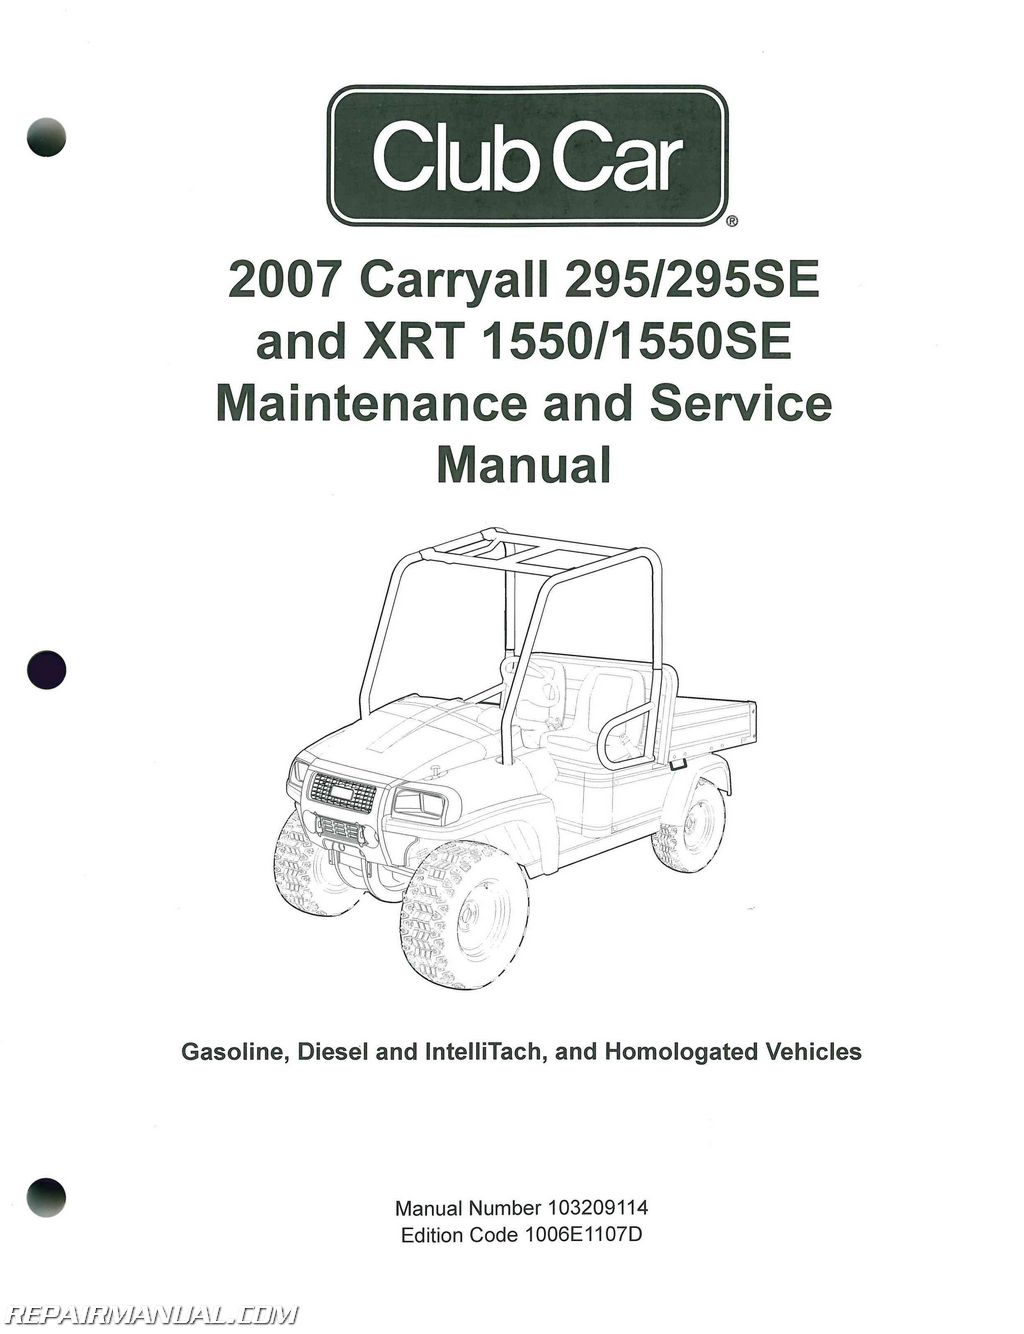 2007 Club Car Carryall Service Manual 295, 295SE - XRT ...